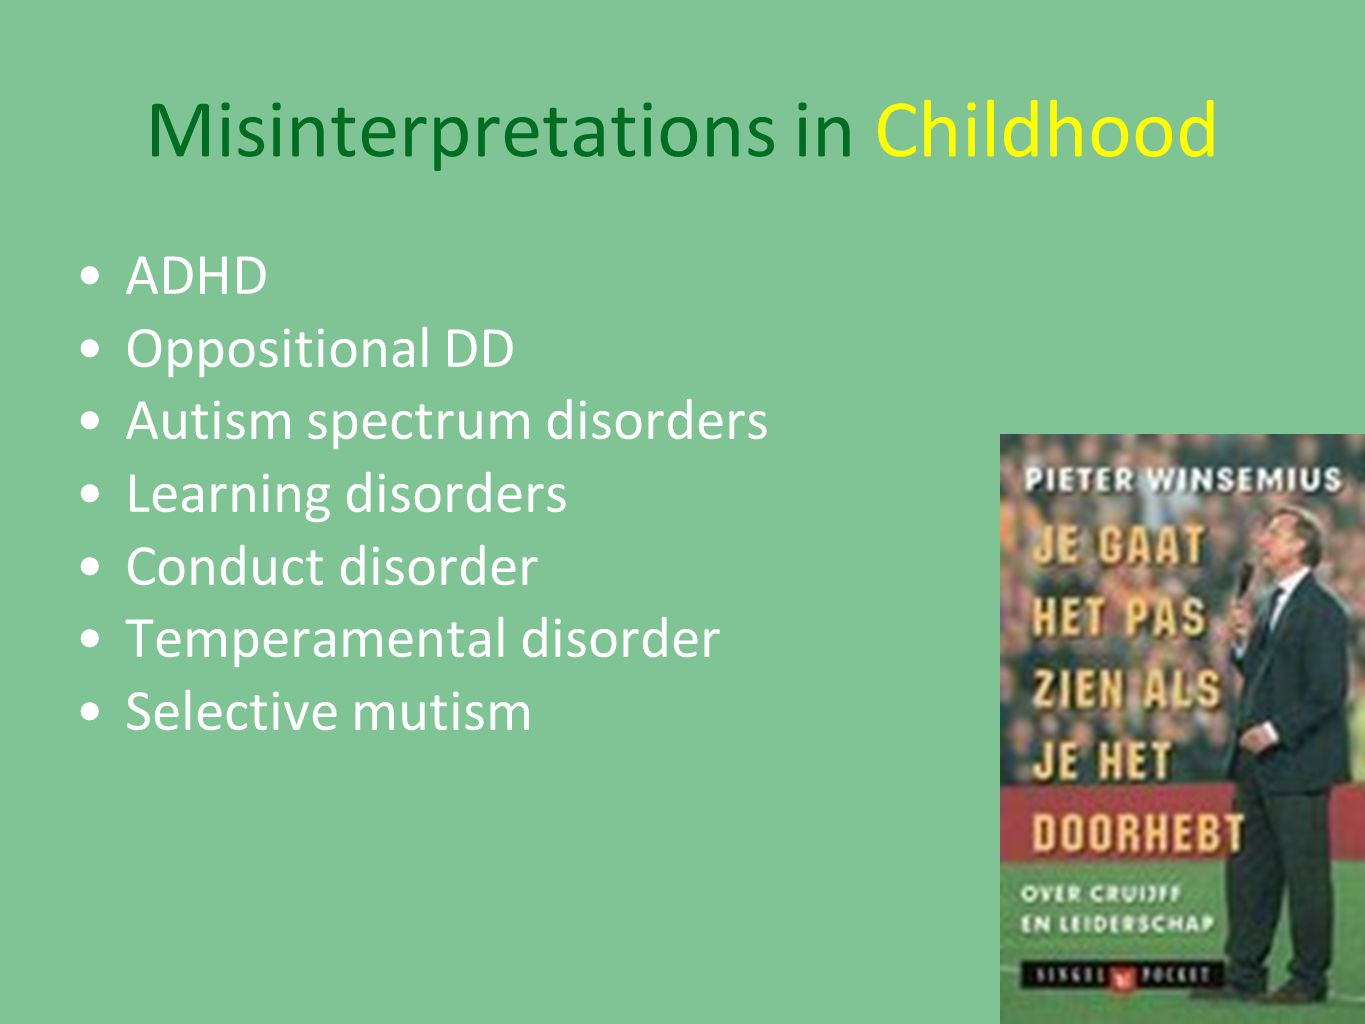 Misinterpretations in Childhood